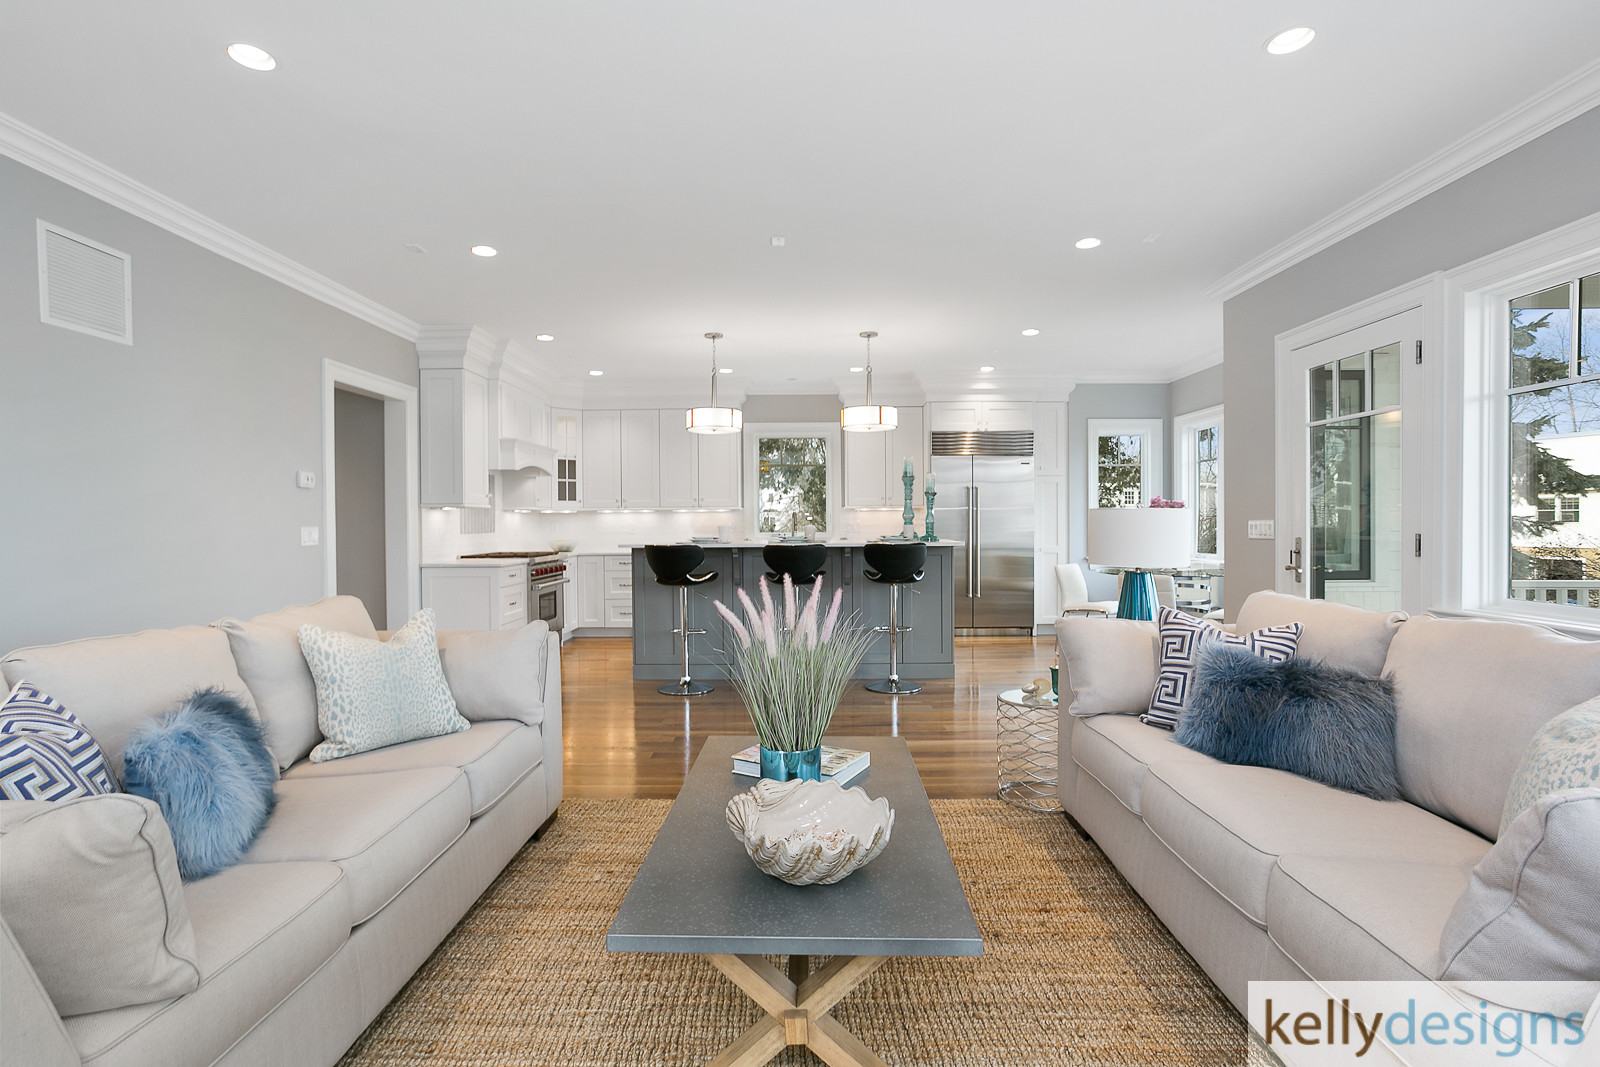 Home Staging Archives - kellydesigns